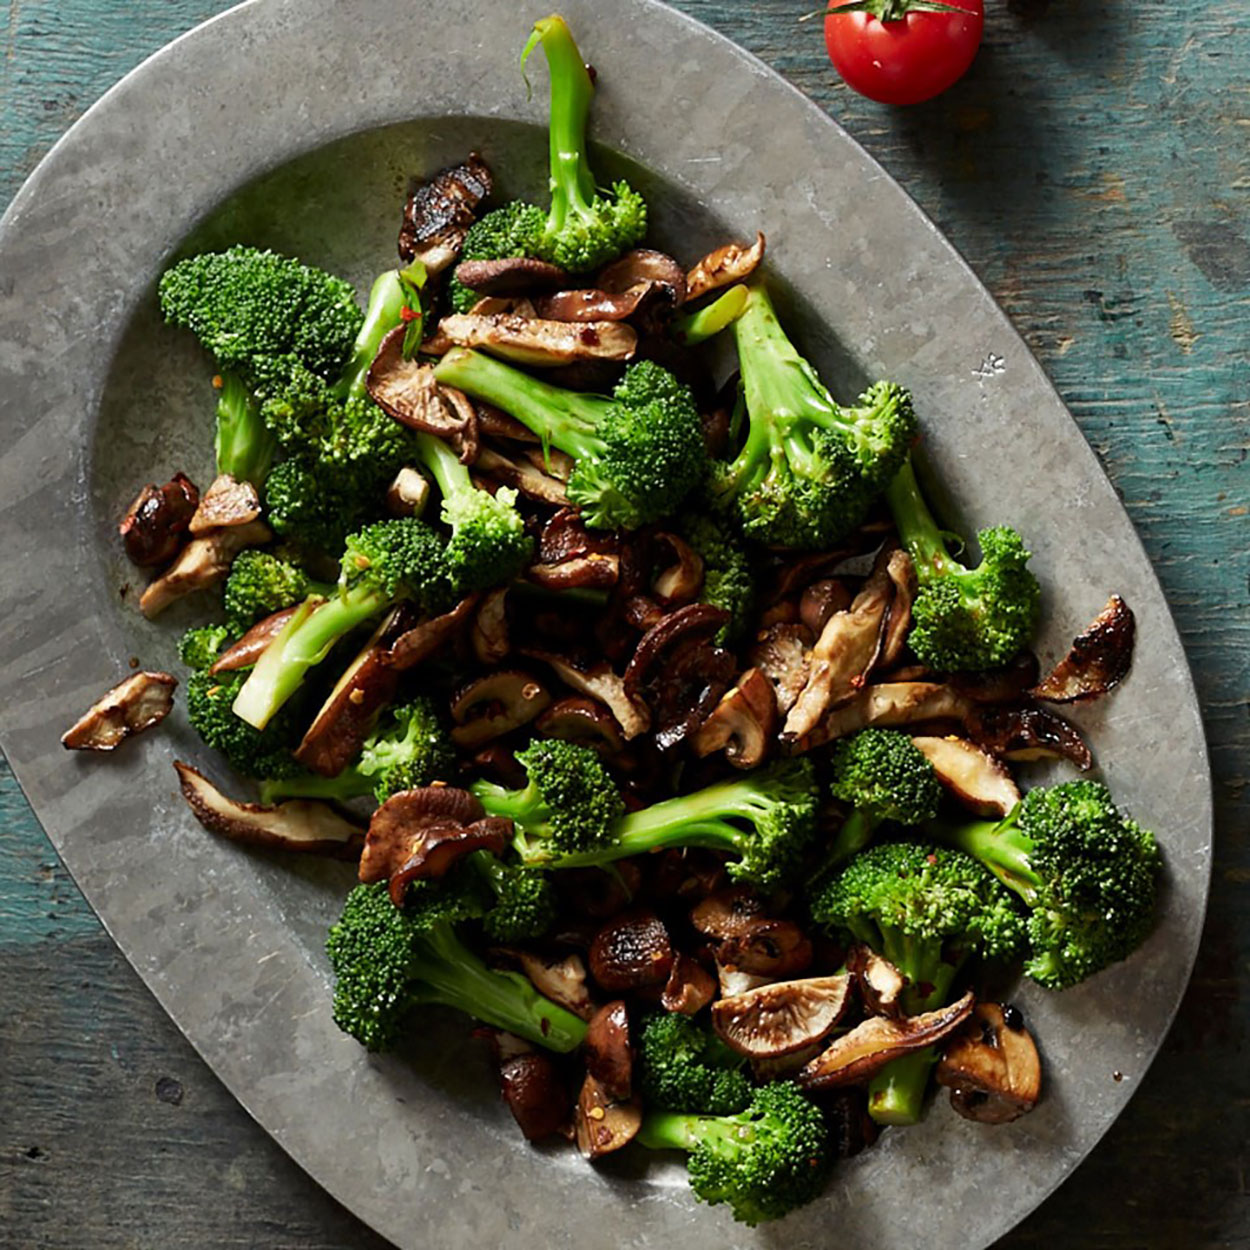 broccoli and mushrooms on a stone tray